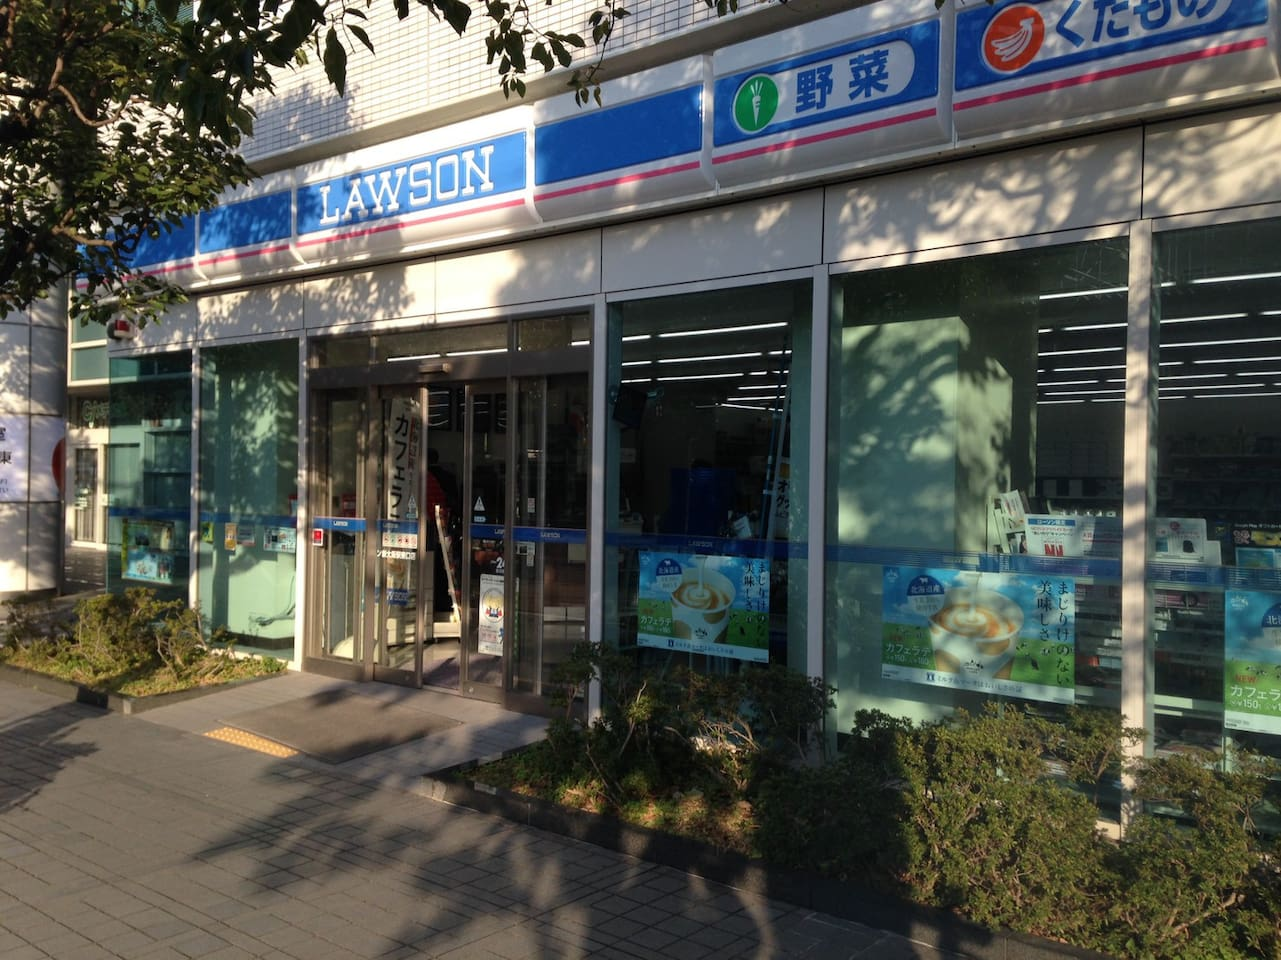 走路1分钟的大型便利商店LAWSON Big convenience store LAWSON, only 1 minute walk